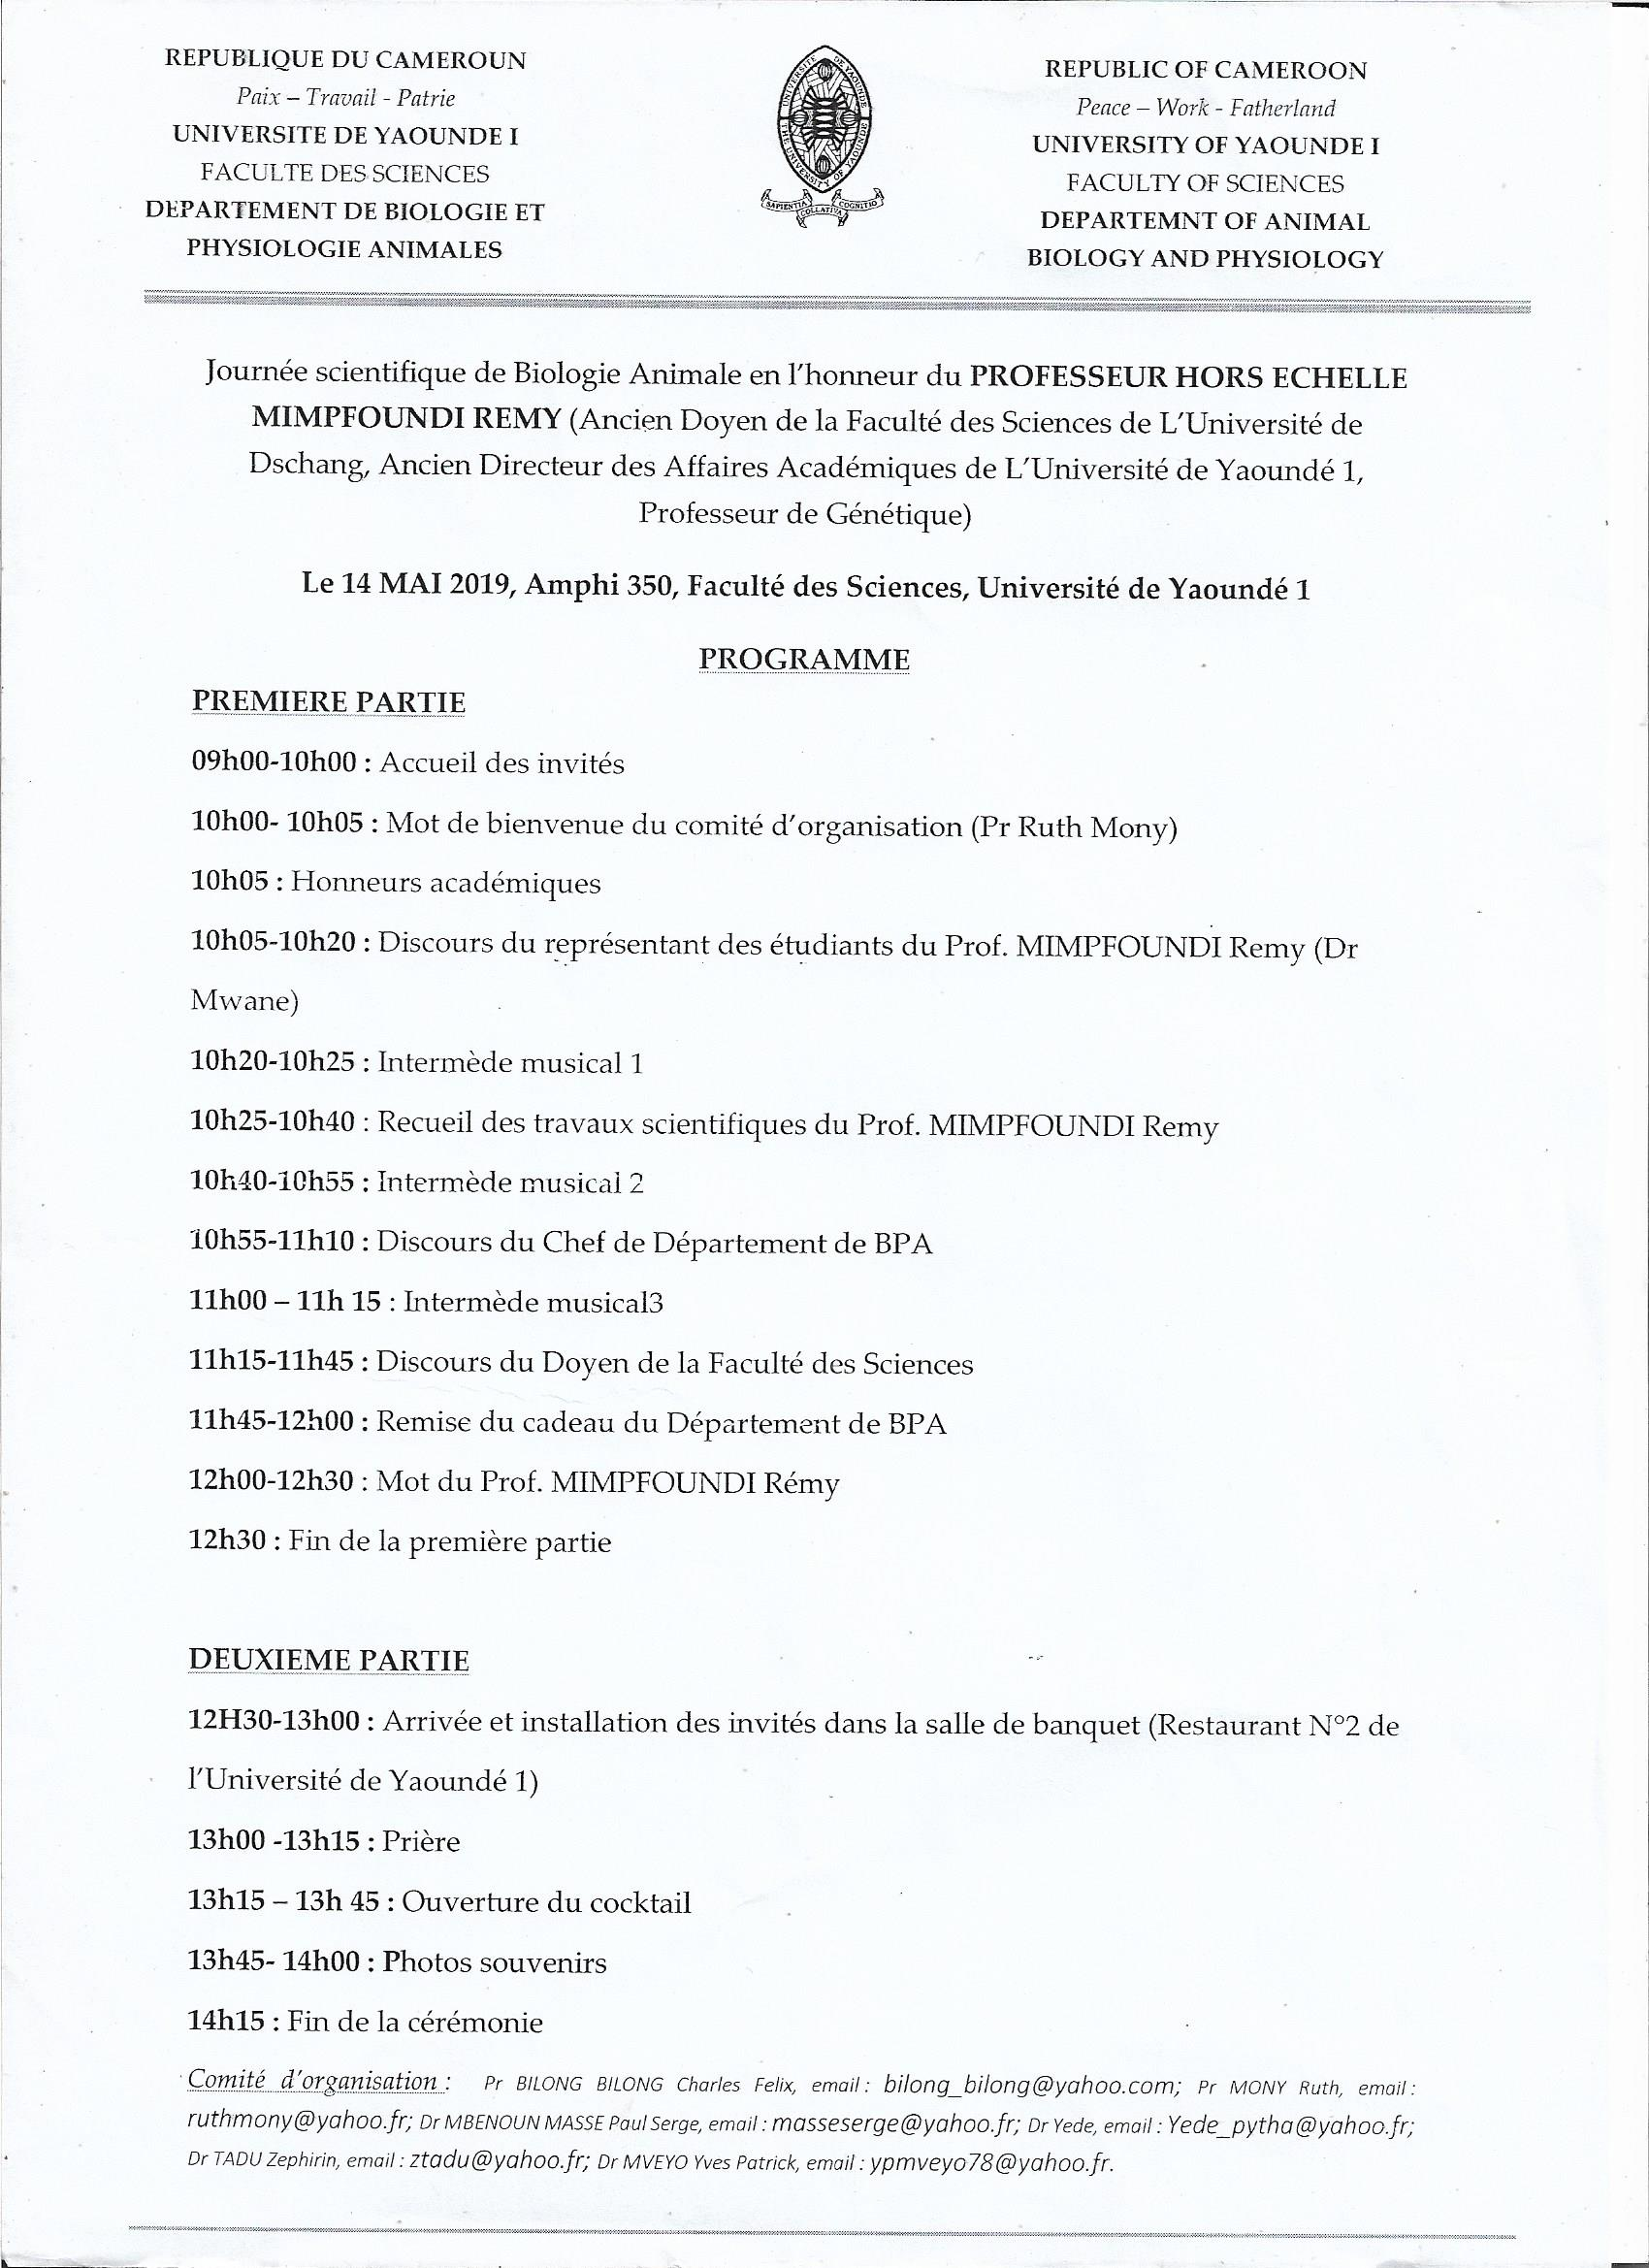 Scientific Day of Animal Biology in Honor of Professor MIMPFOUNDI Remy